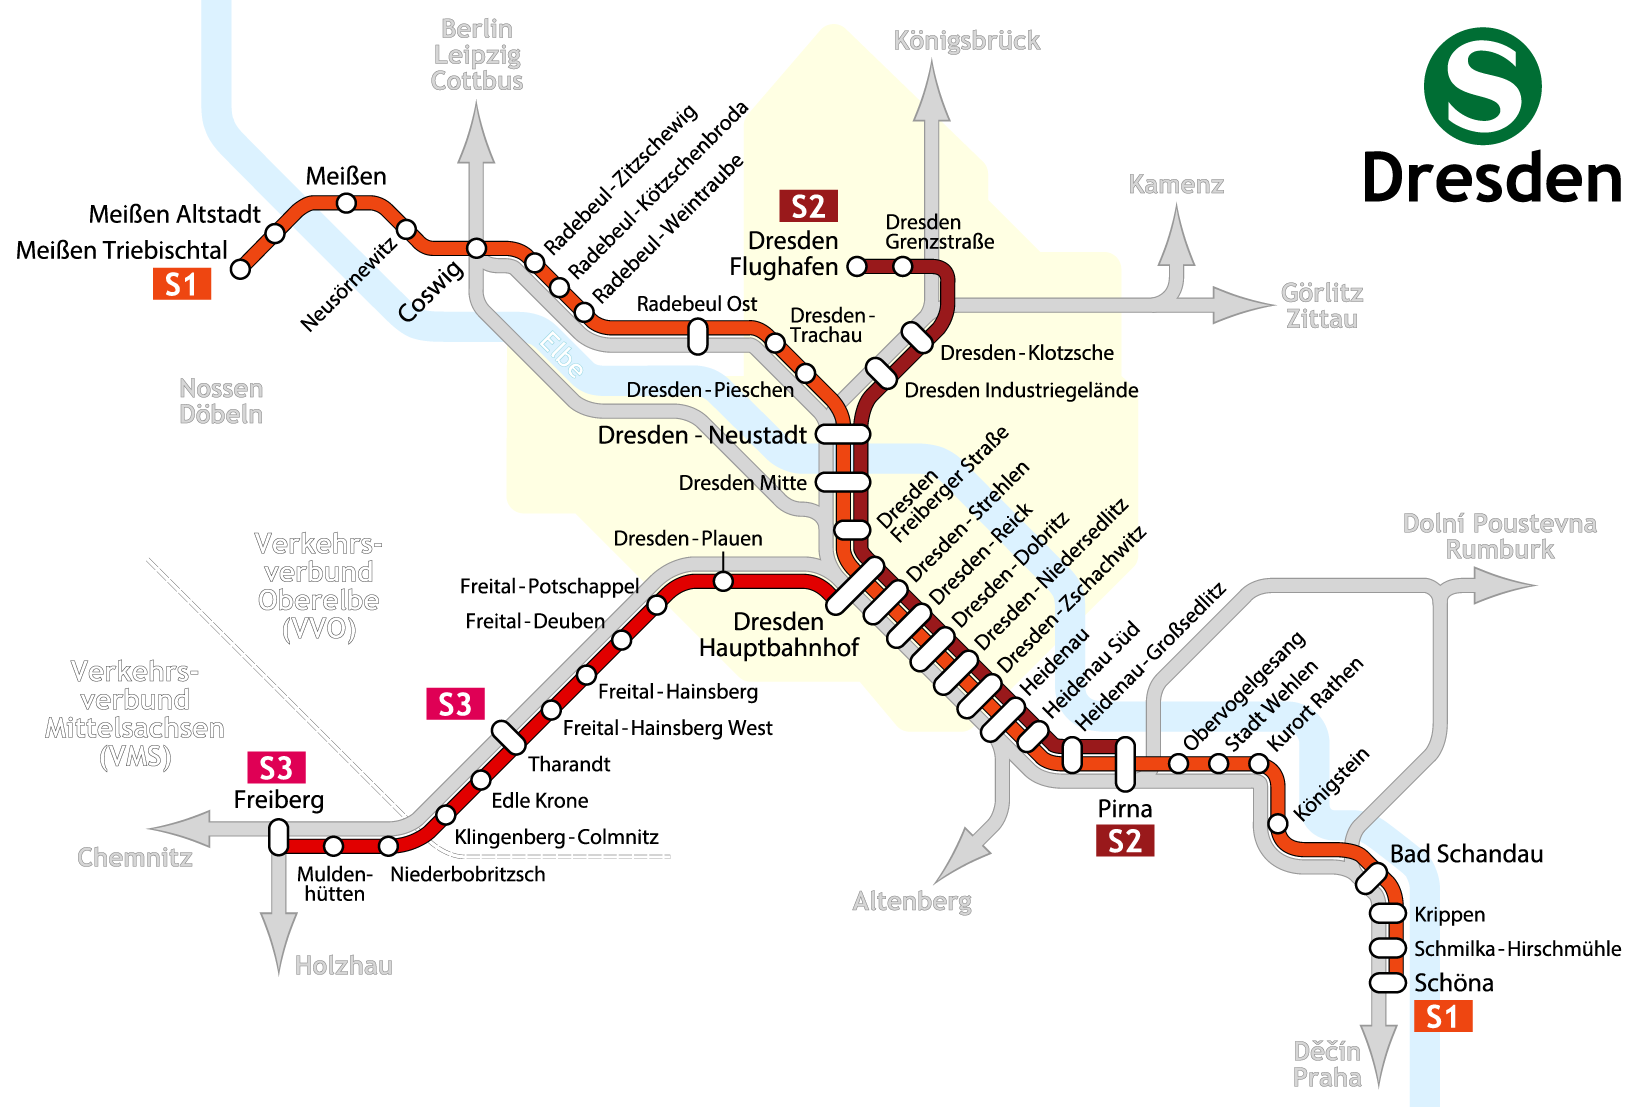 FileDresden SBahn Liniennetzpng Wikimedia Commons